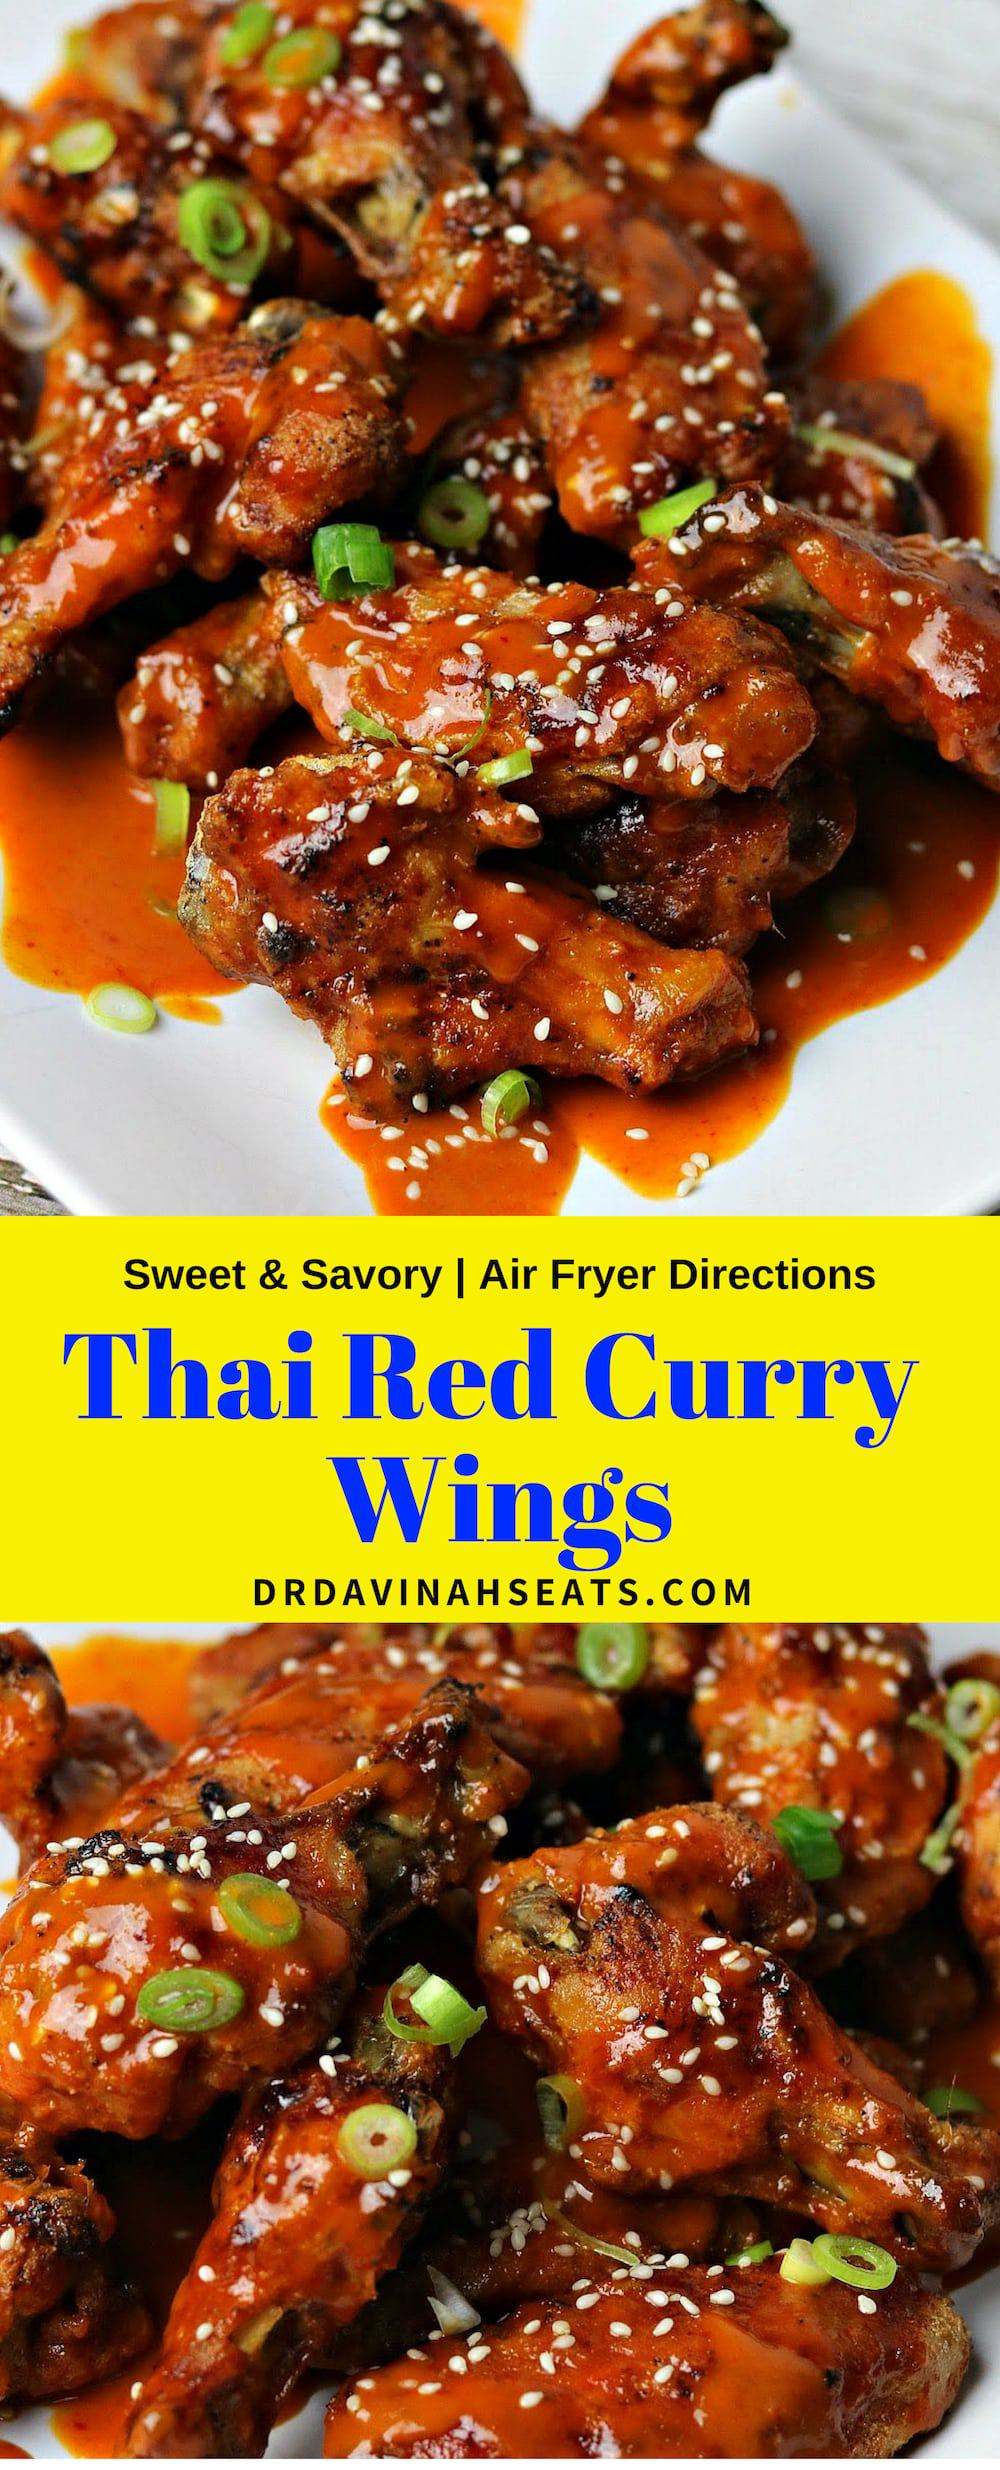 A Pinterest image for Thai Red Curry Chicken Wings